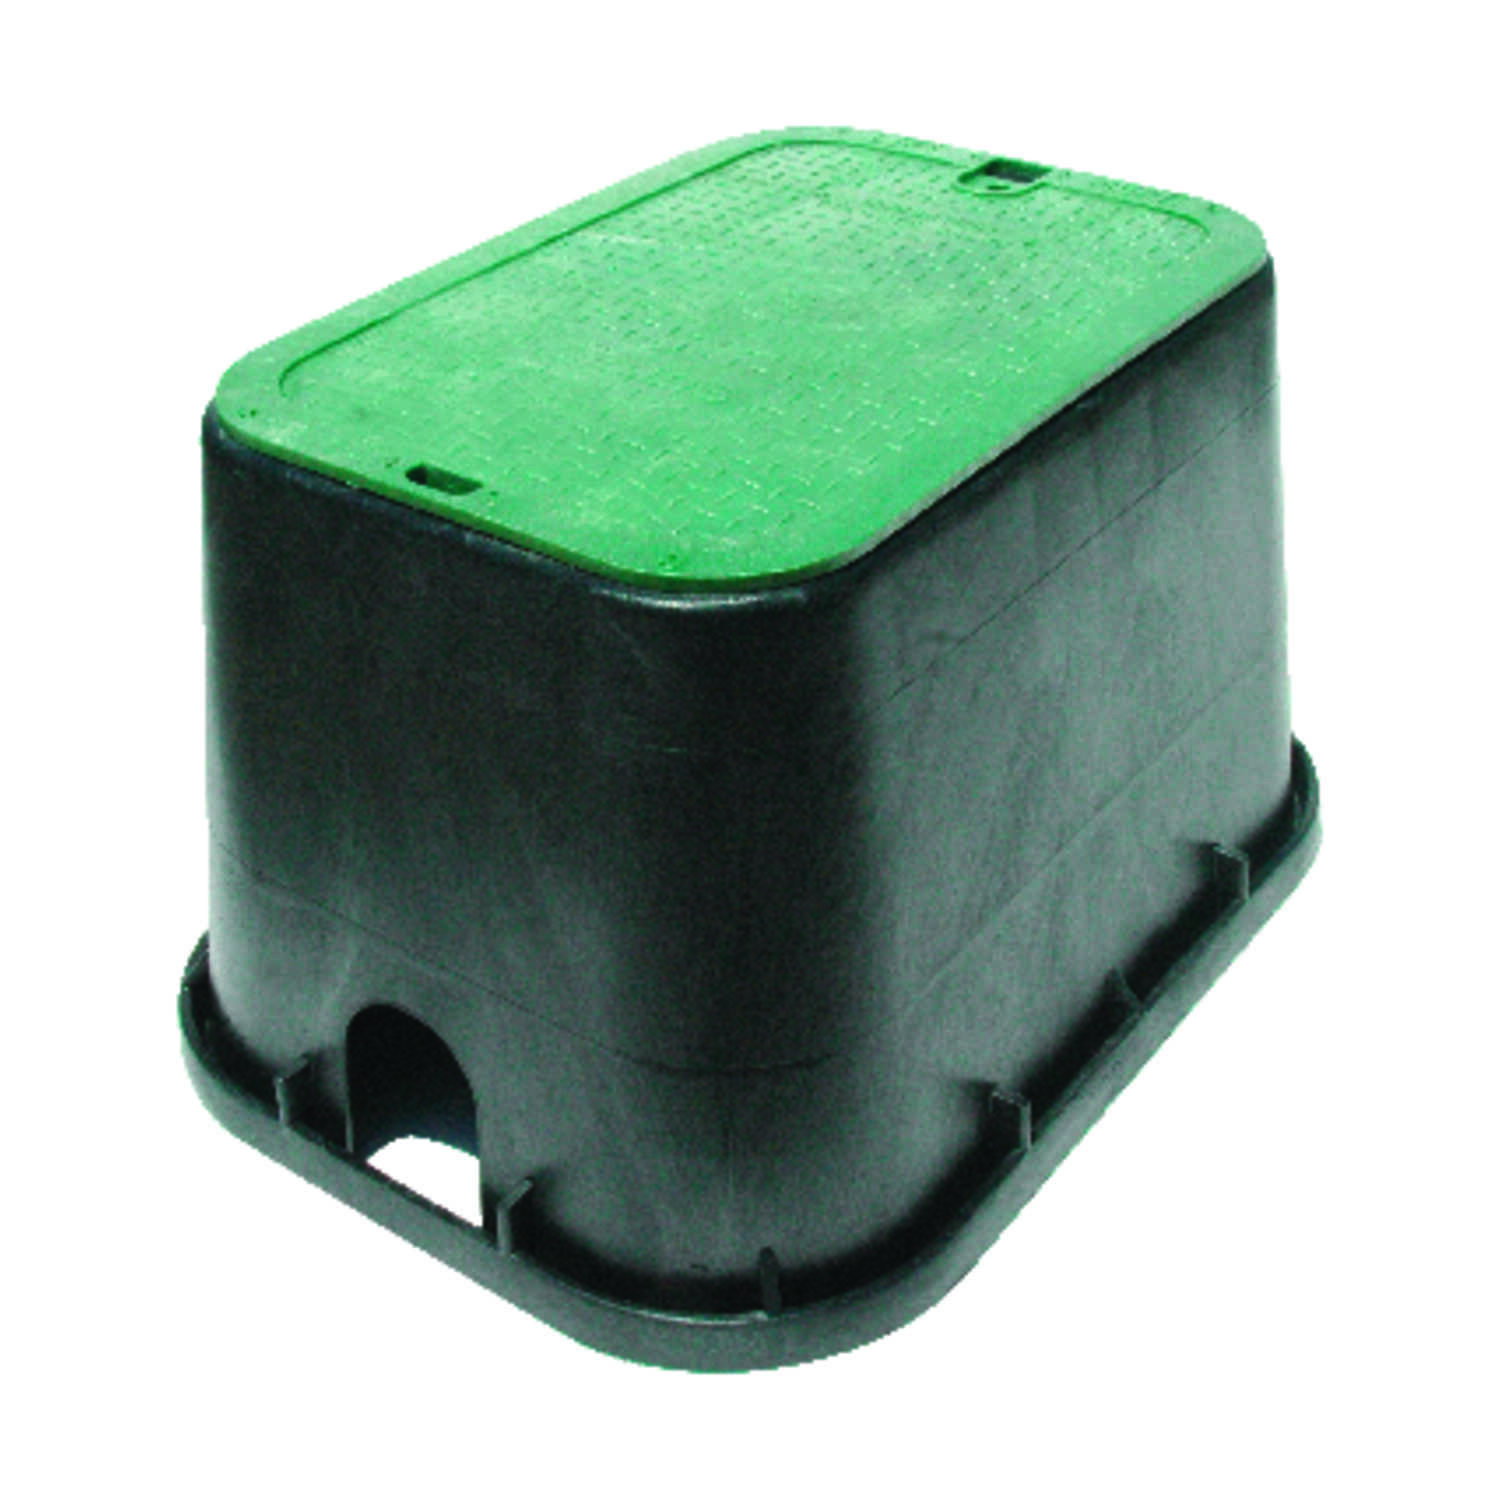 NDS  16 in. L x 12 in. H x 21 in. W Rectangular  Valve Box with Overlapping Cover